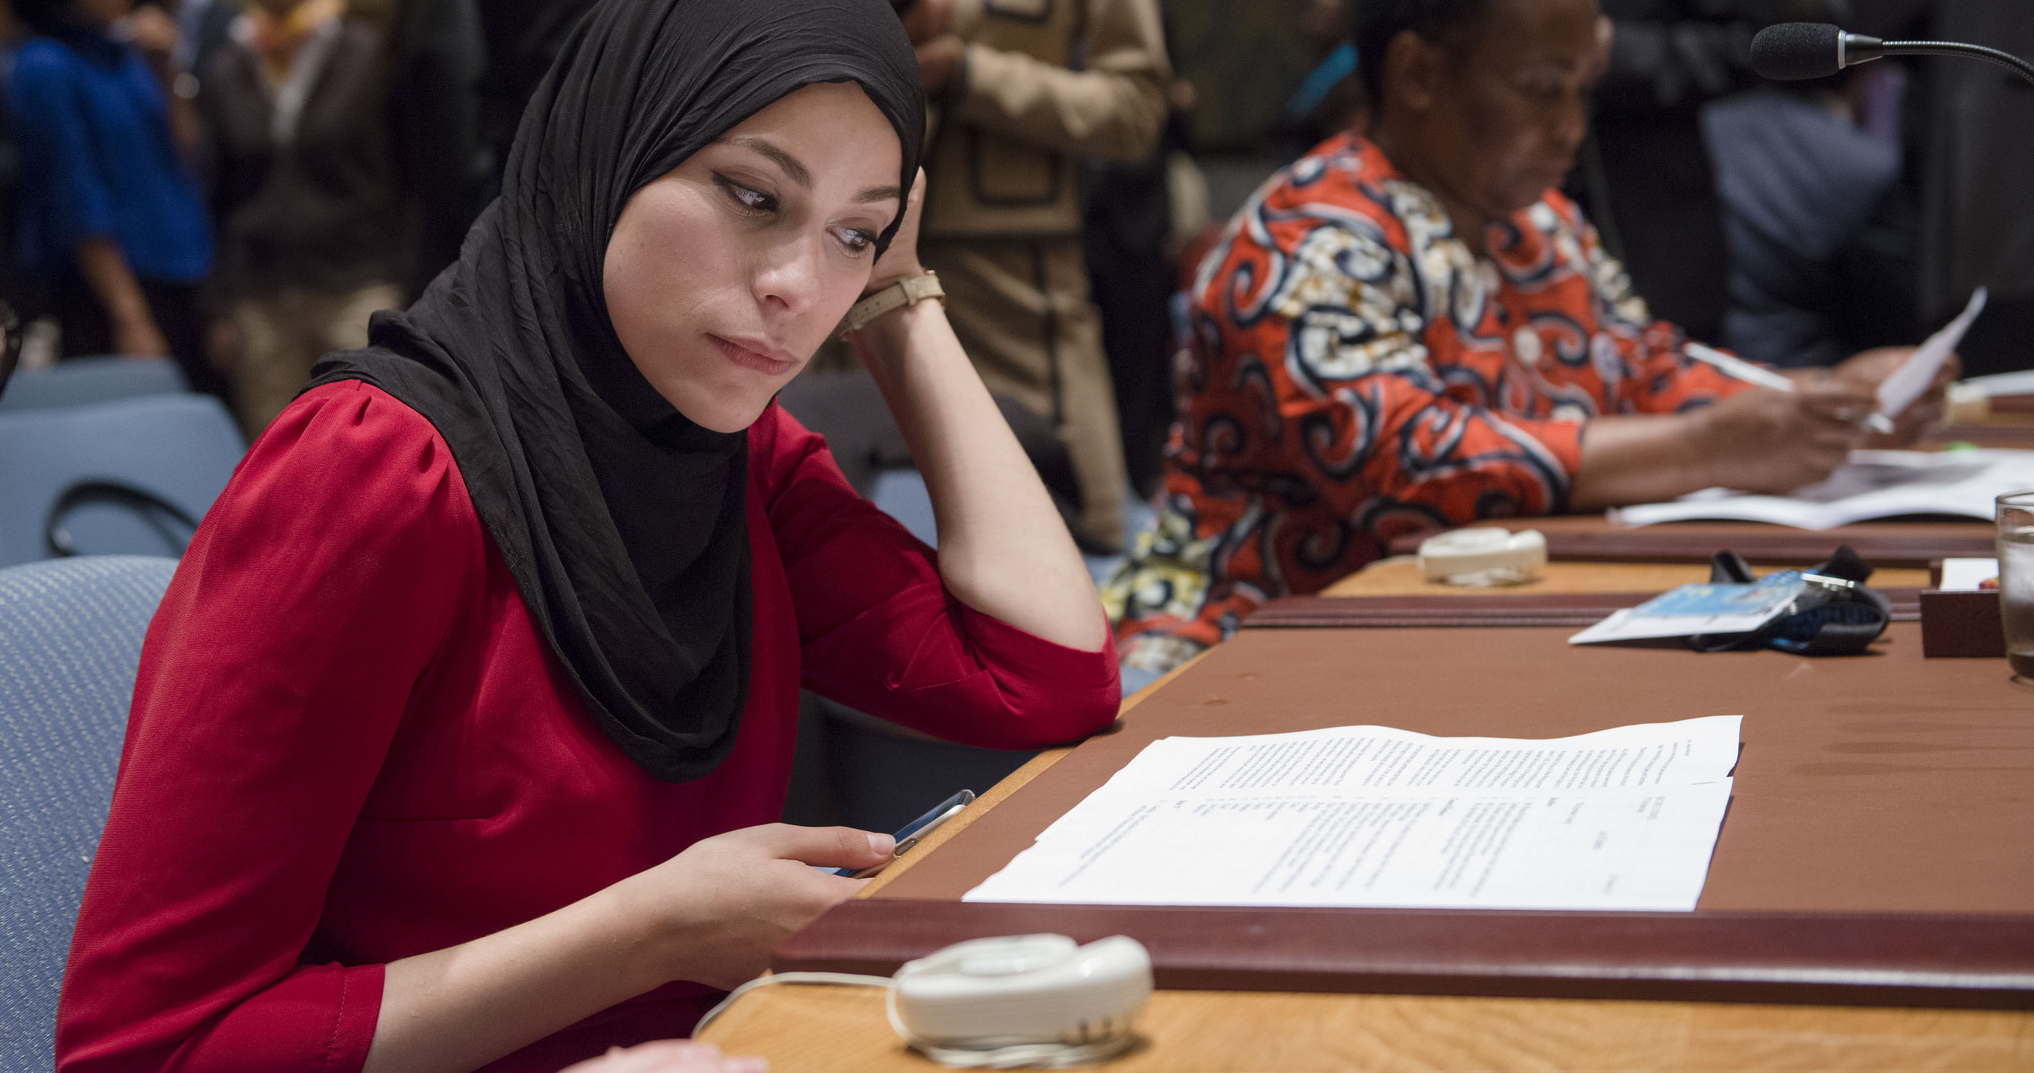 Open debate in the UN Security Council in 2015 on women, peace and security (Photo: UN/Flickr)